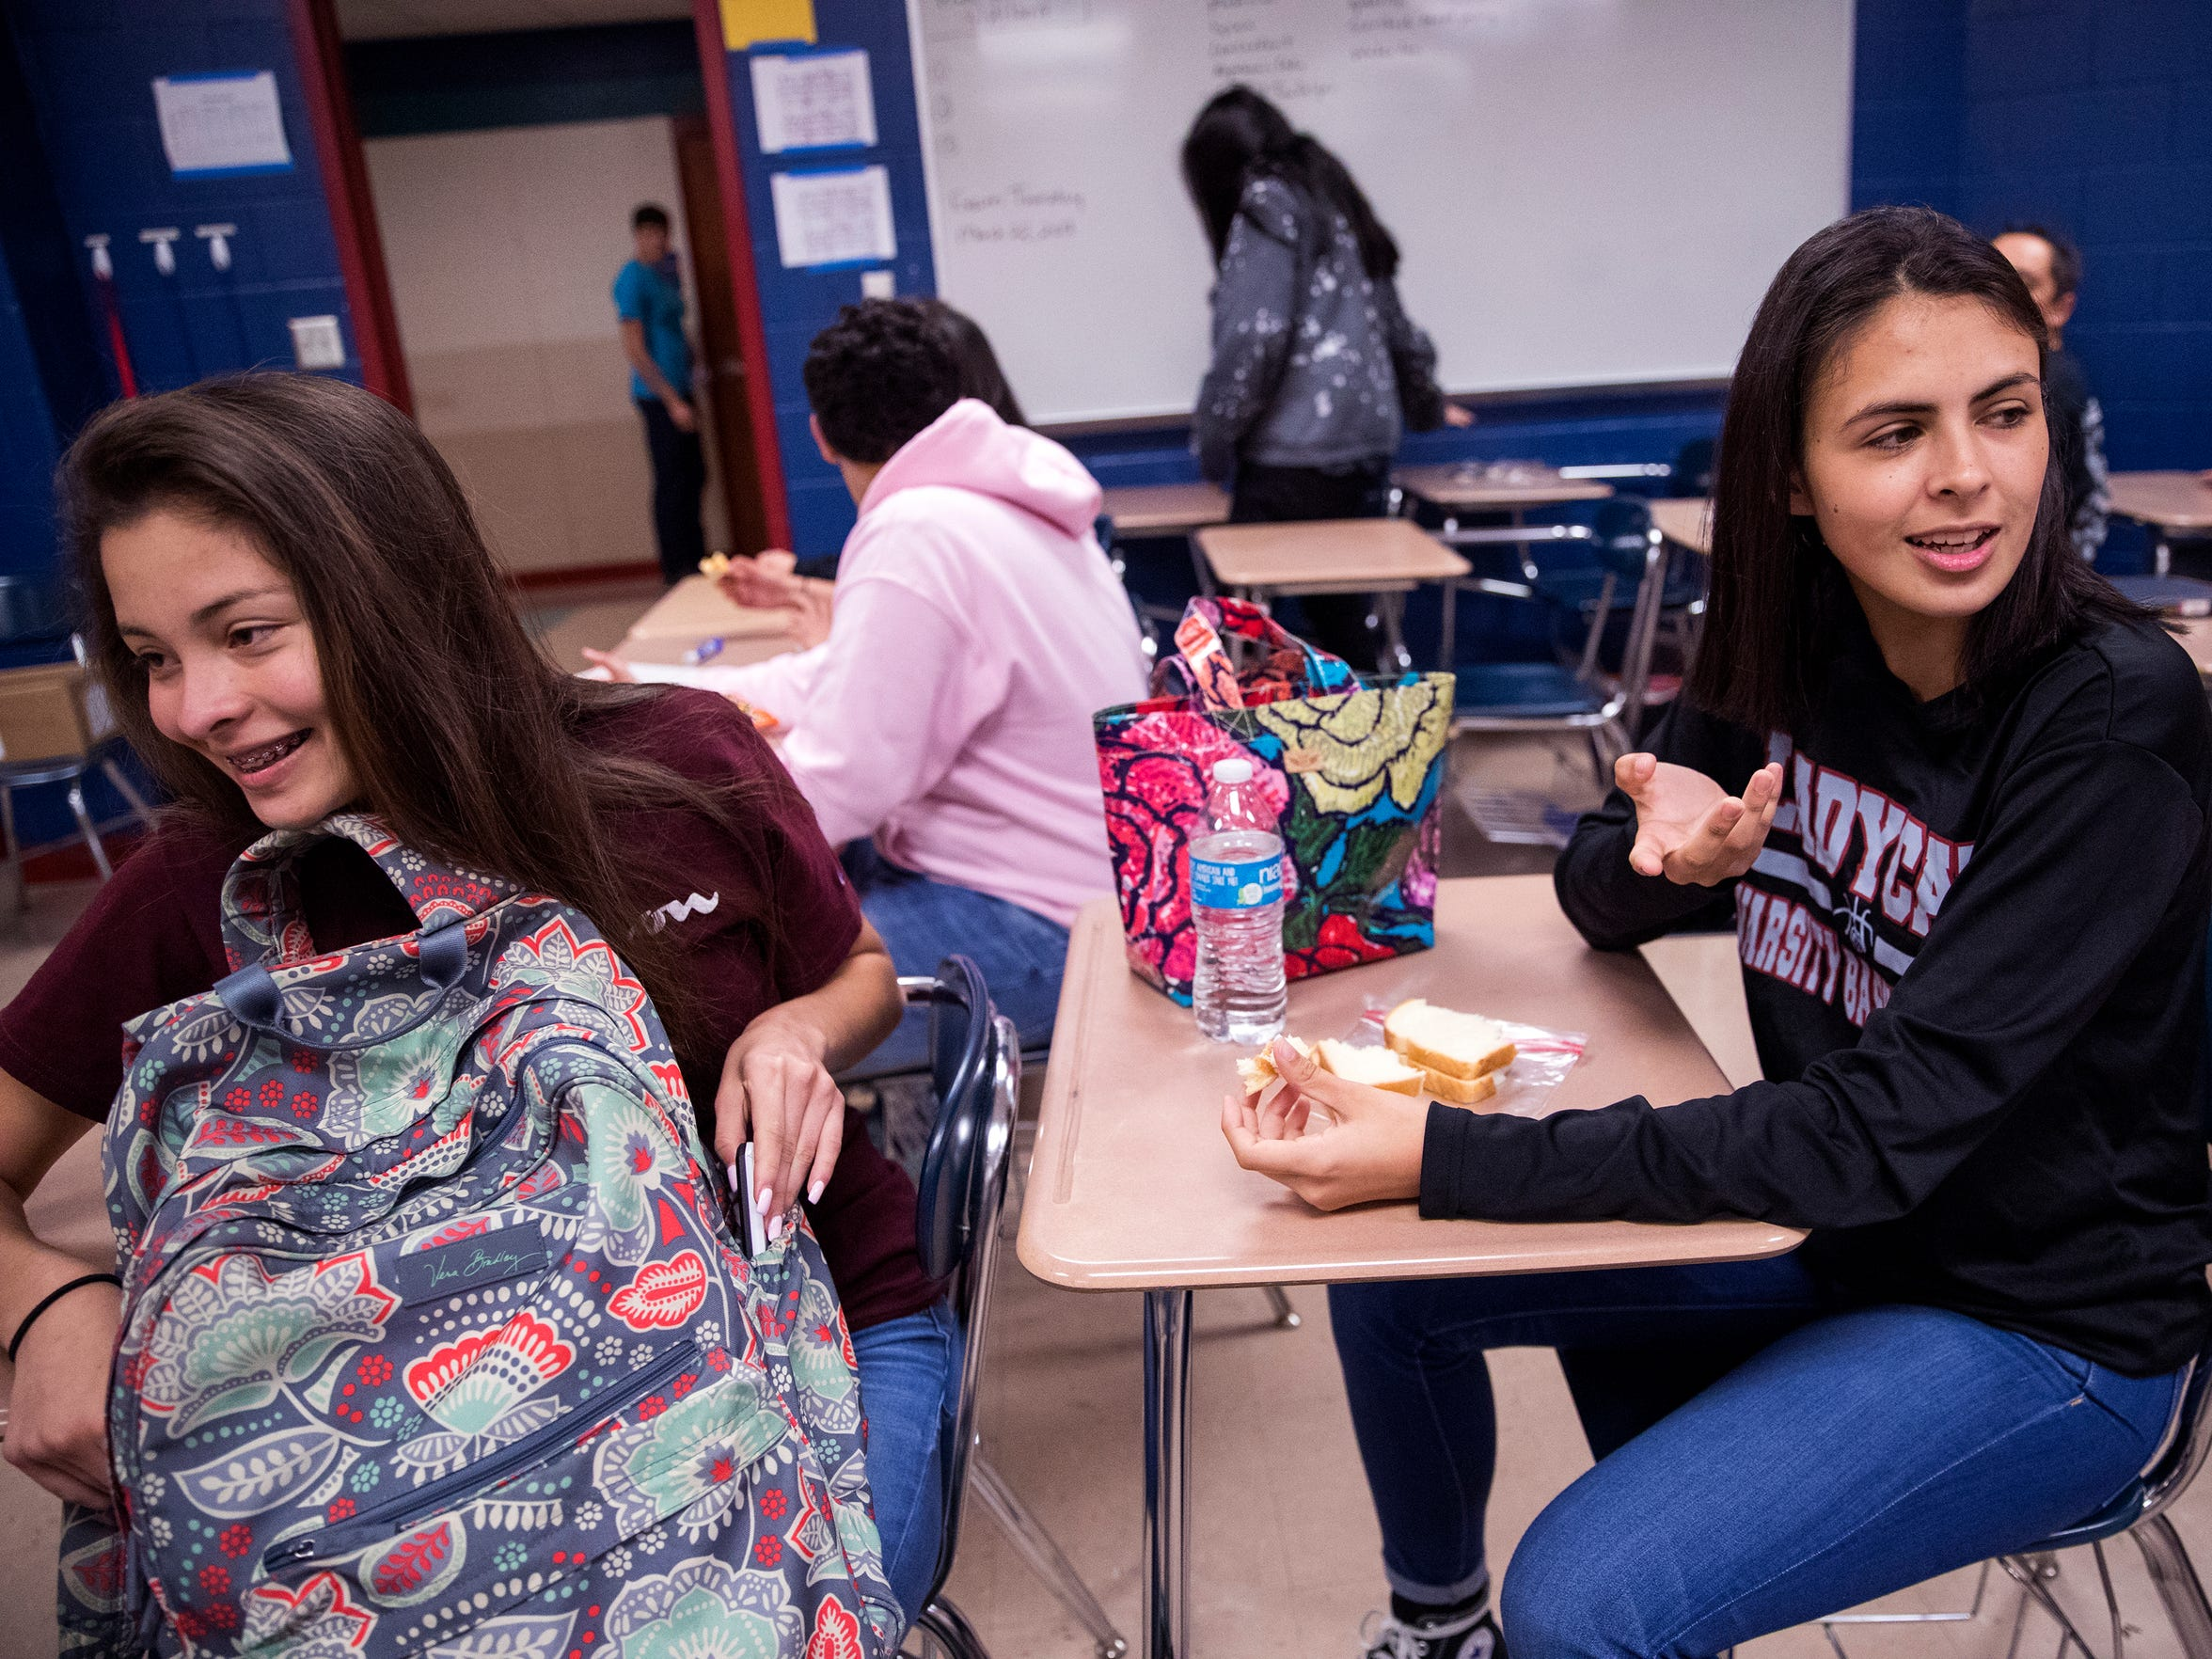 Arleth Flores, 15, and Jessica Hernandez, 16, eat lunch in Jessica's favorite teacher's classroom at Gregory-Portland High School on March 21, 2018. Jessica lived her whole life in Rockport, but when Hurricane Harvey destroyed the apartment she had just moved into with her mom and sister, she didn't have any other choice but to move.